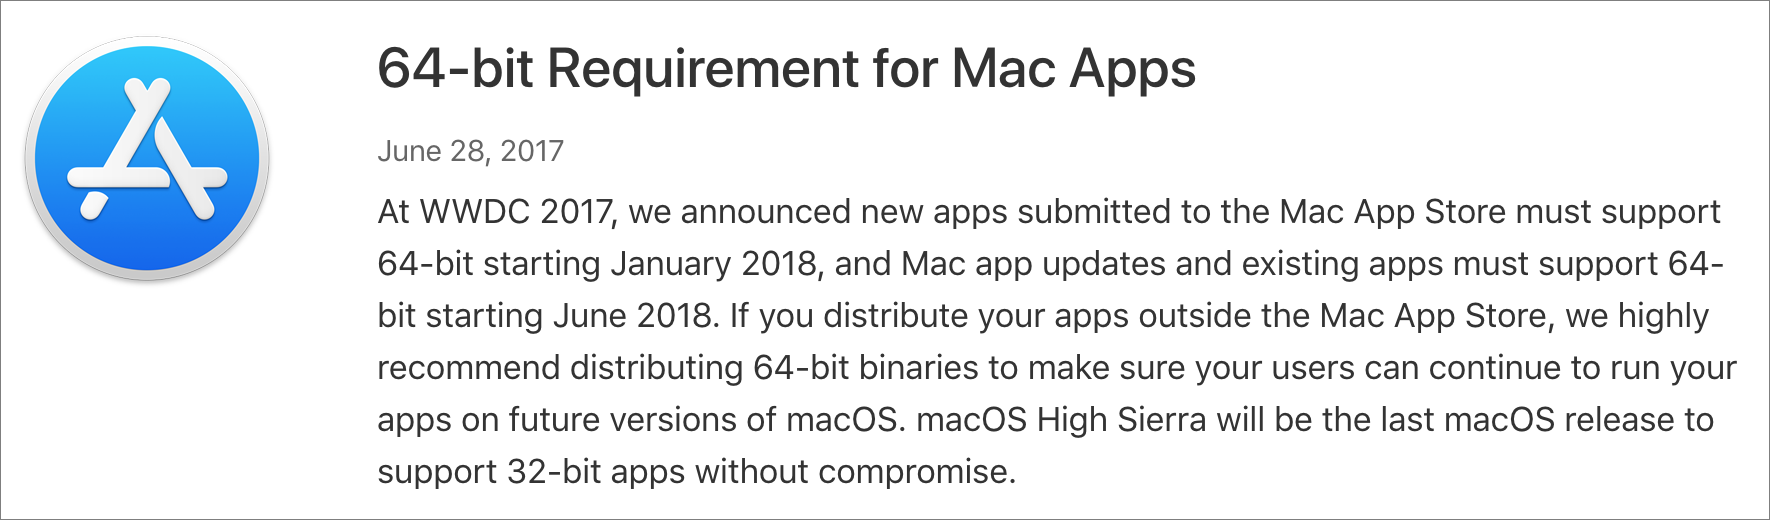 macOS 10 13 4 Warns Users about 32-Bit Apps - TidBITS